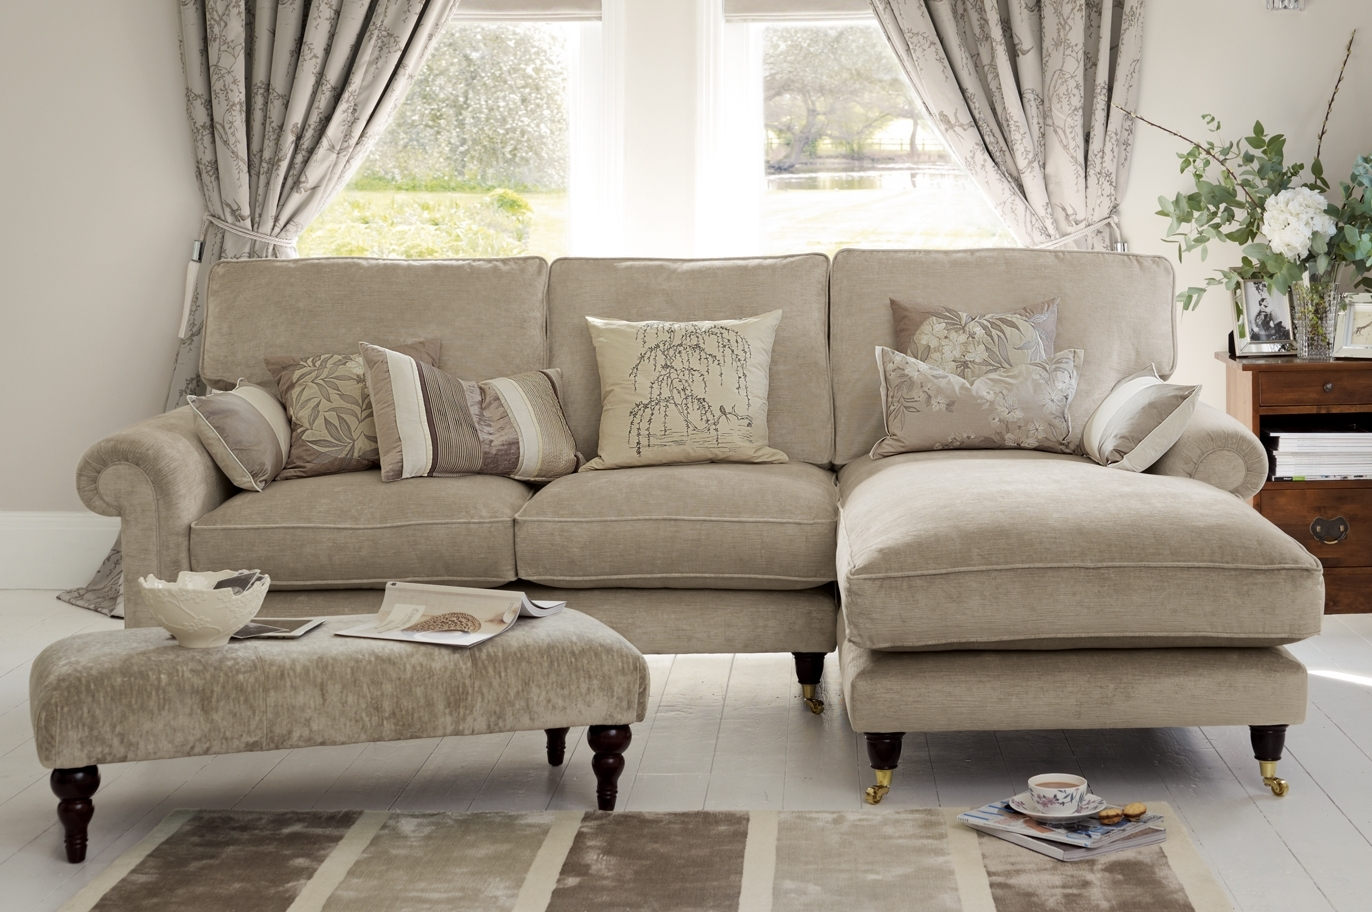 "Kingston"" Sectional Sofa With Chaise In Sable Beige From Laura In Fashionable Kingston Ontario Sectional Sofas (Gallery 1 of 20)"